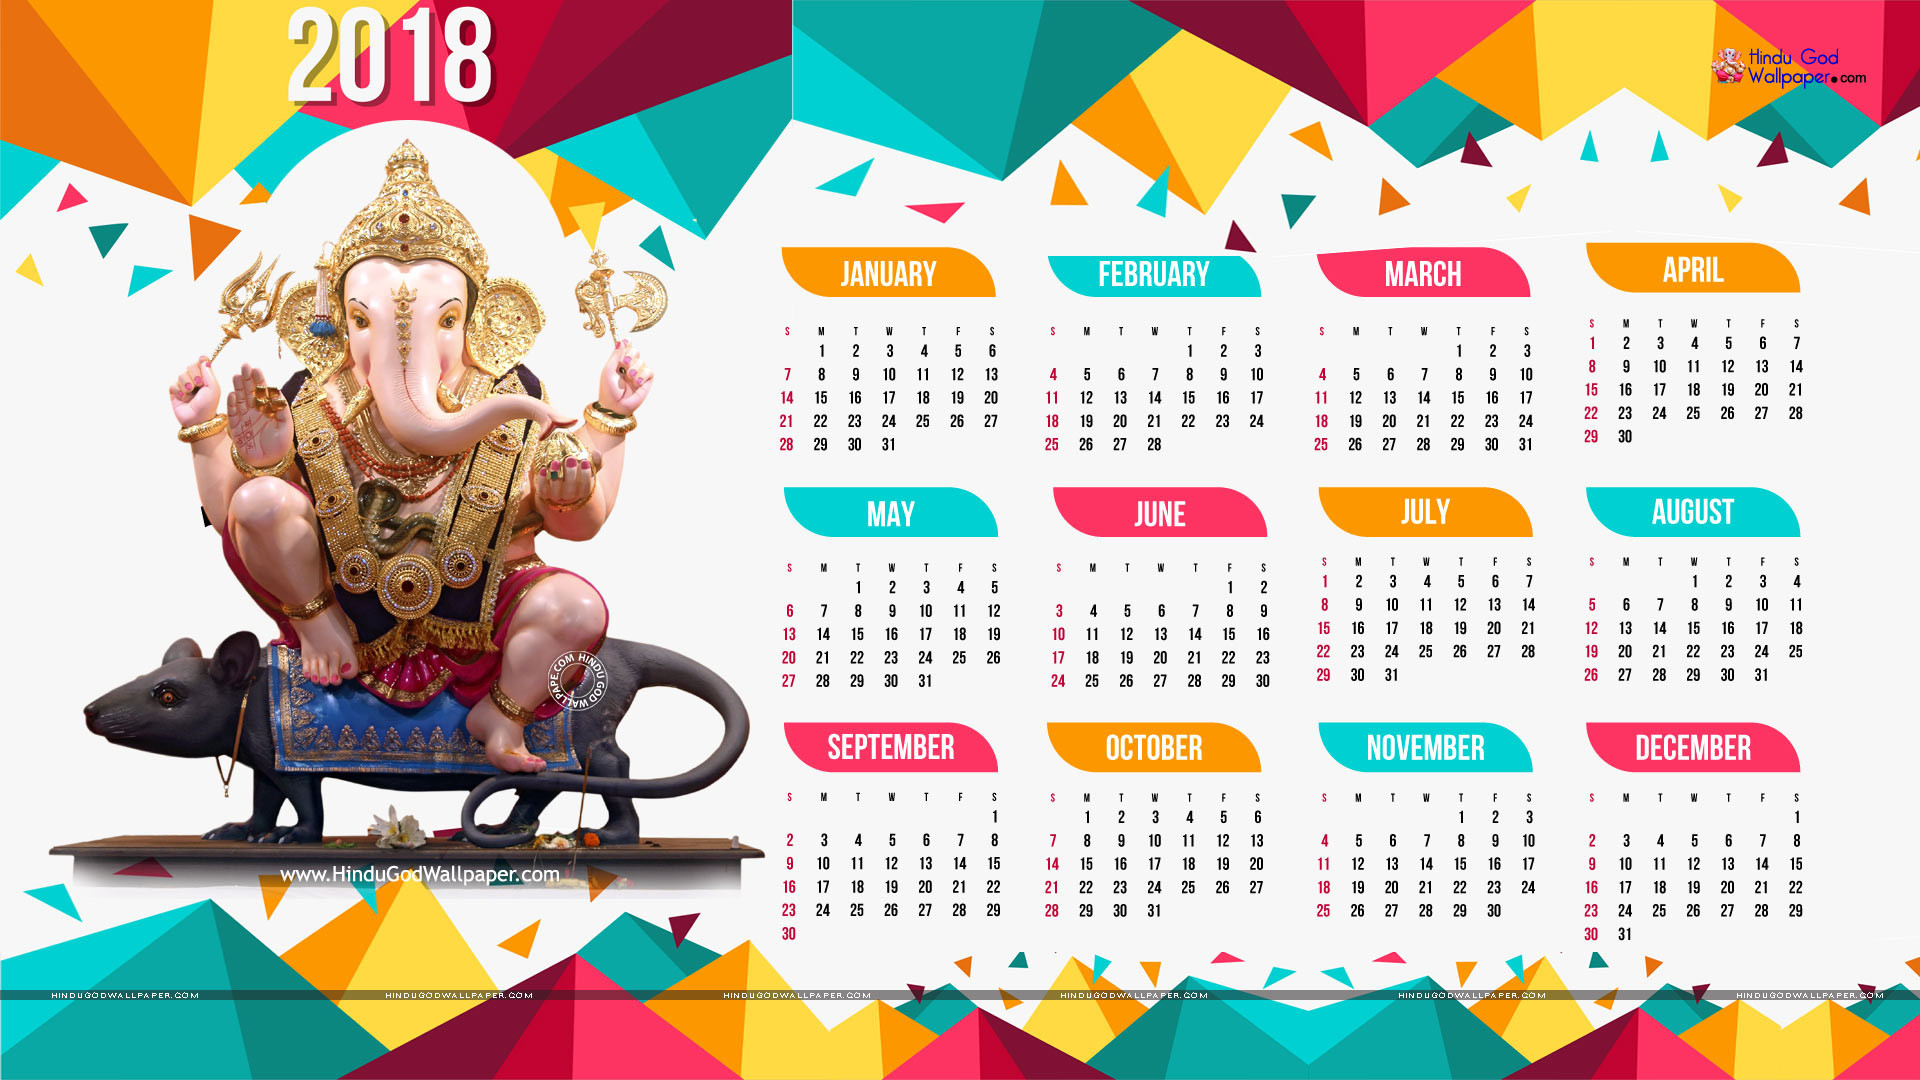 Wallpapers with Calendar 2018 1920x1080